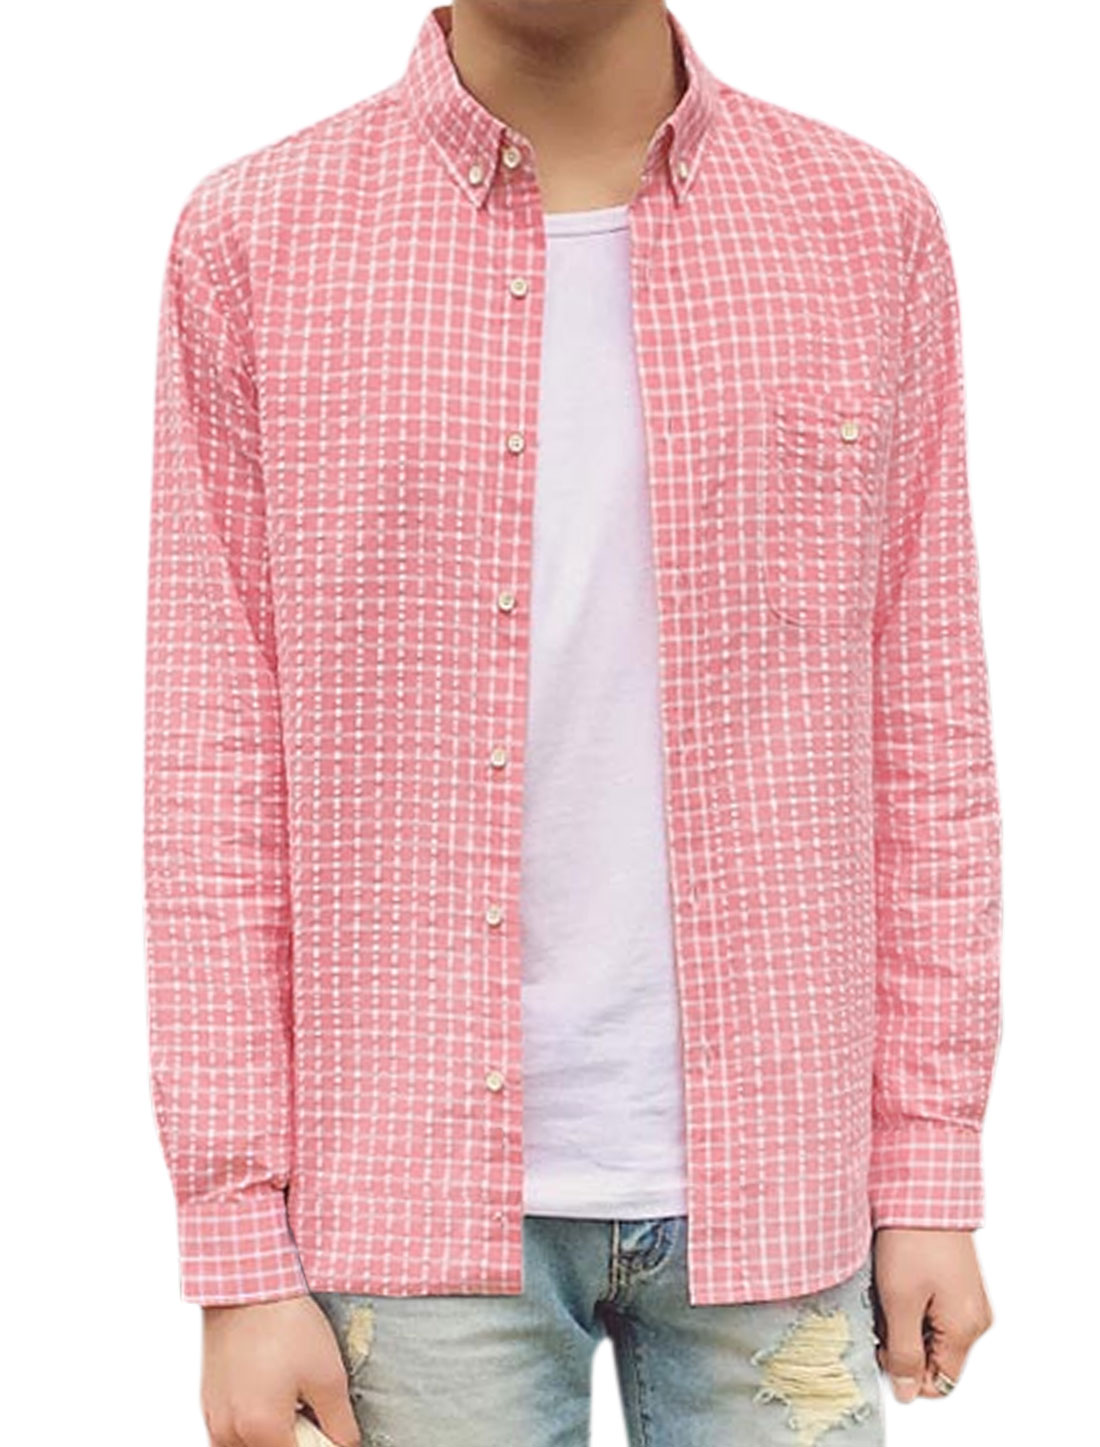 Men Chest Pocket Point Collar Single Breasted Plaids Shirt Pink M